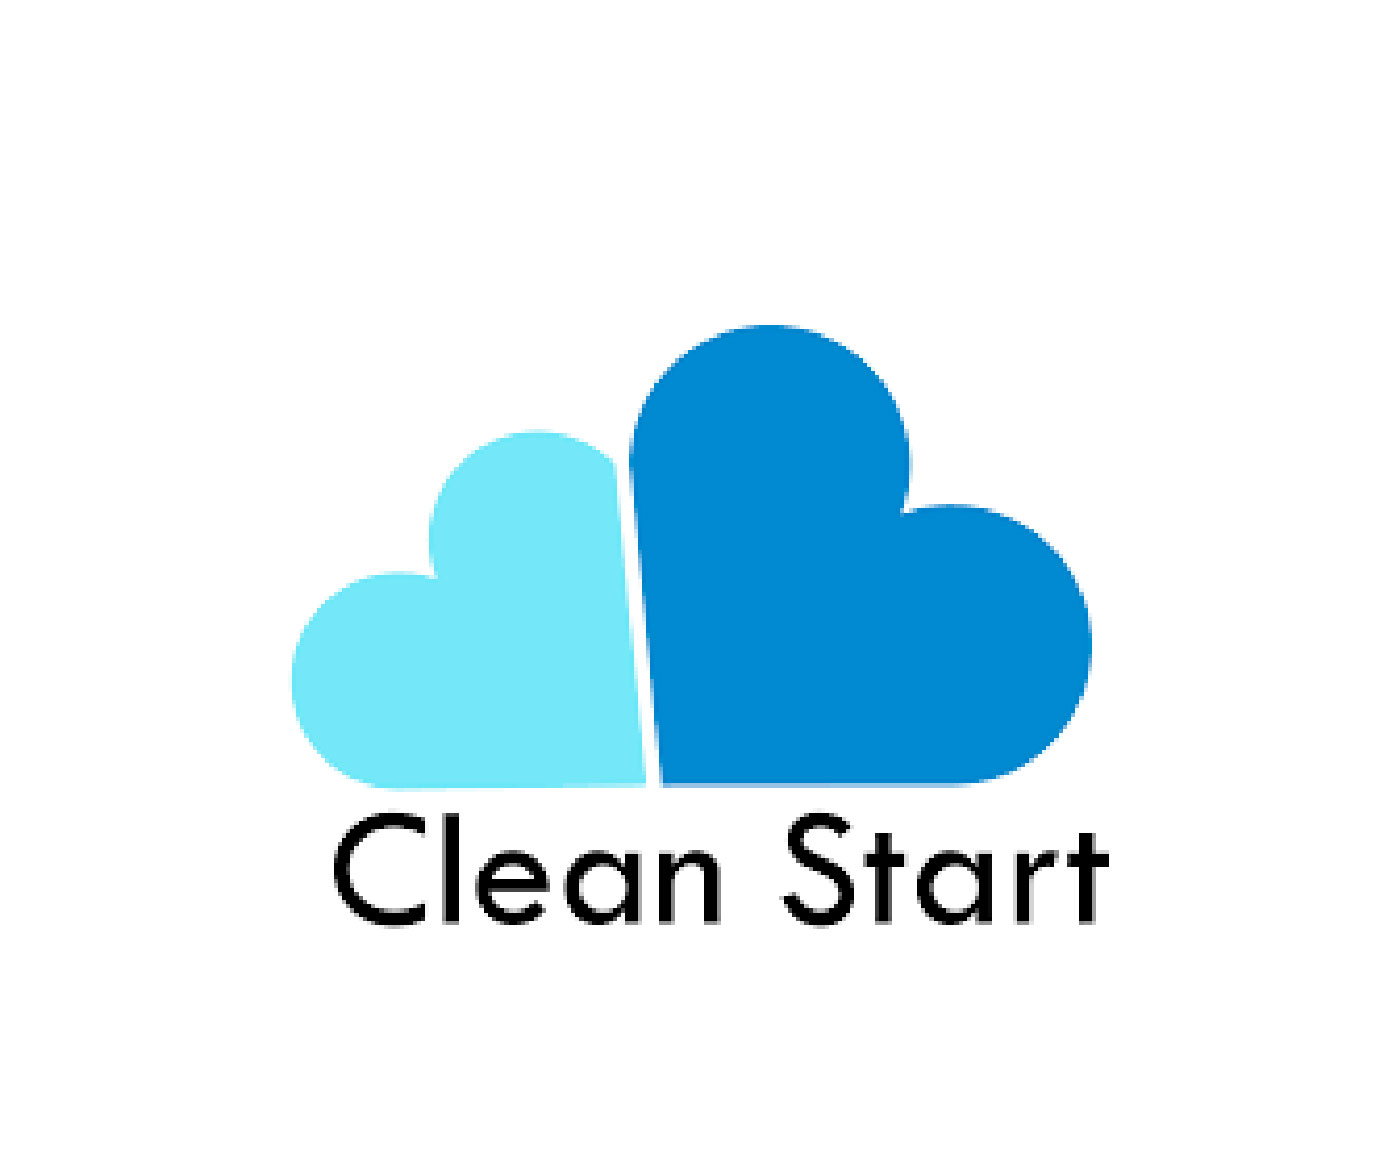 tactive consulting - cleanstart logo resize 1